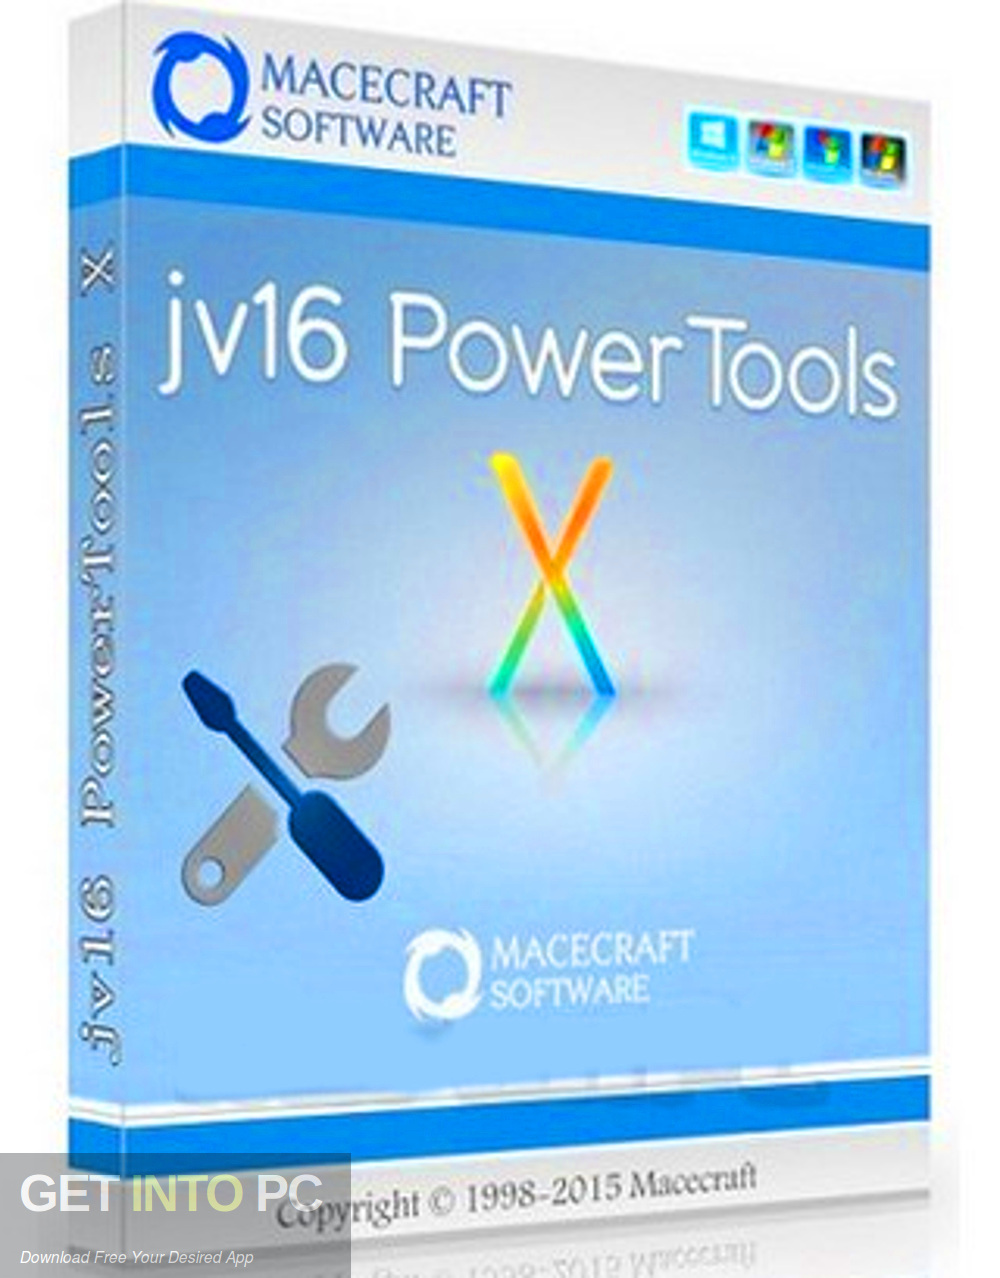 jv16 PowerTools X 6.0.0.1068 +Crack With License Key Latest Free Download 2021